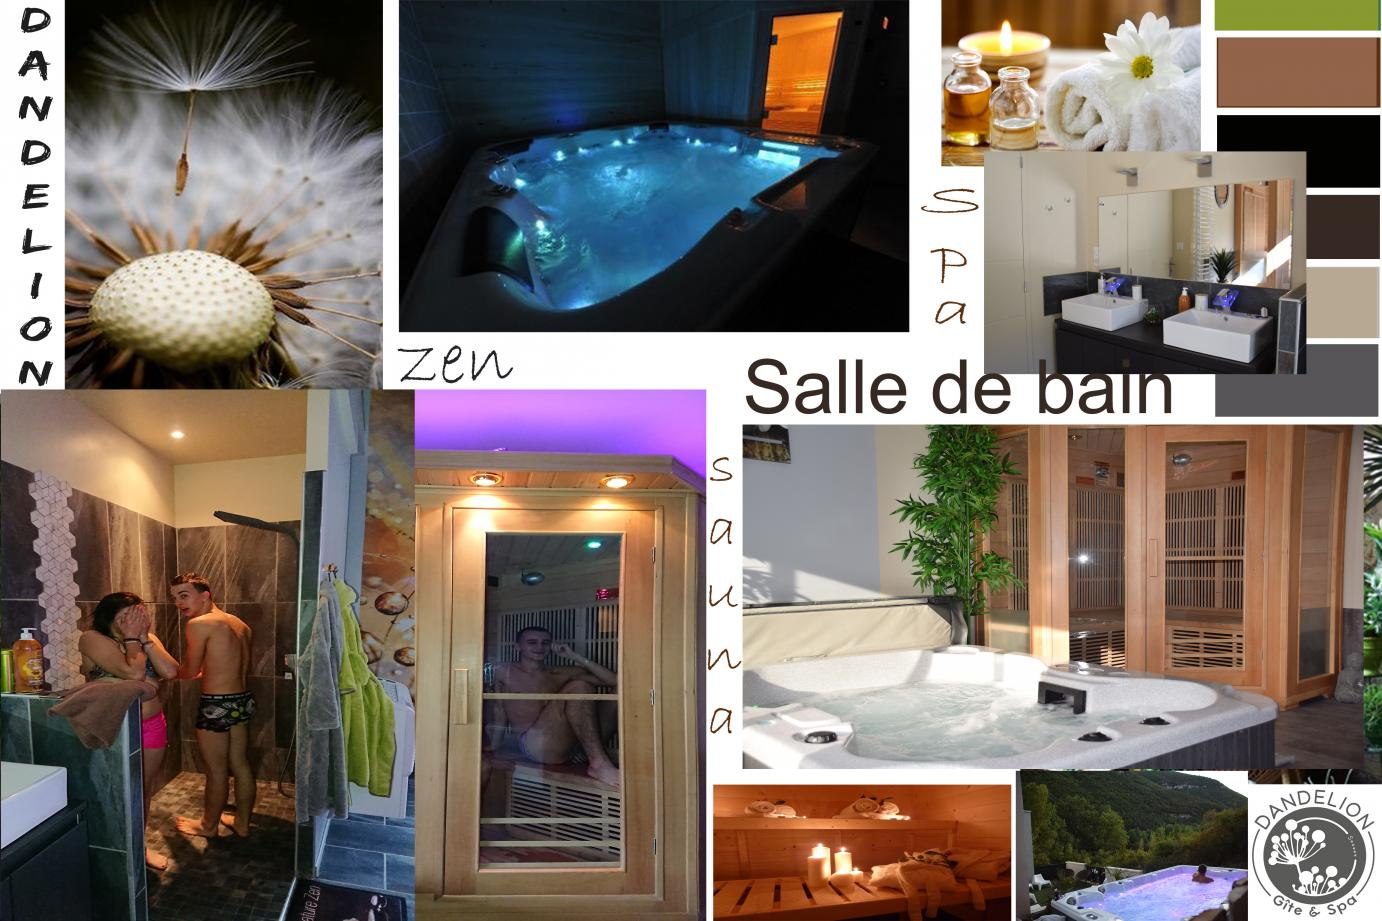 salle de bain spa design avec jacuzzi sauna ecolodge chambre avec jacuzzi aveyron le soleilo. Black Bedroom Furniture Sets. Home Design Ideas